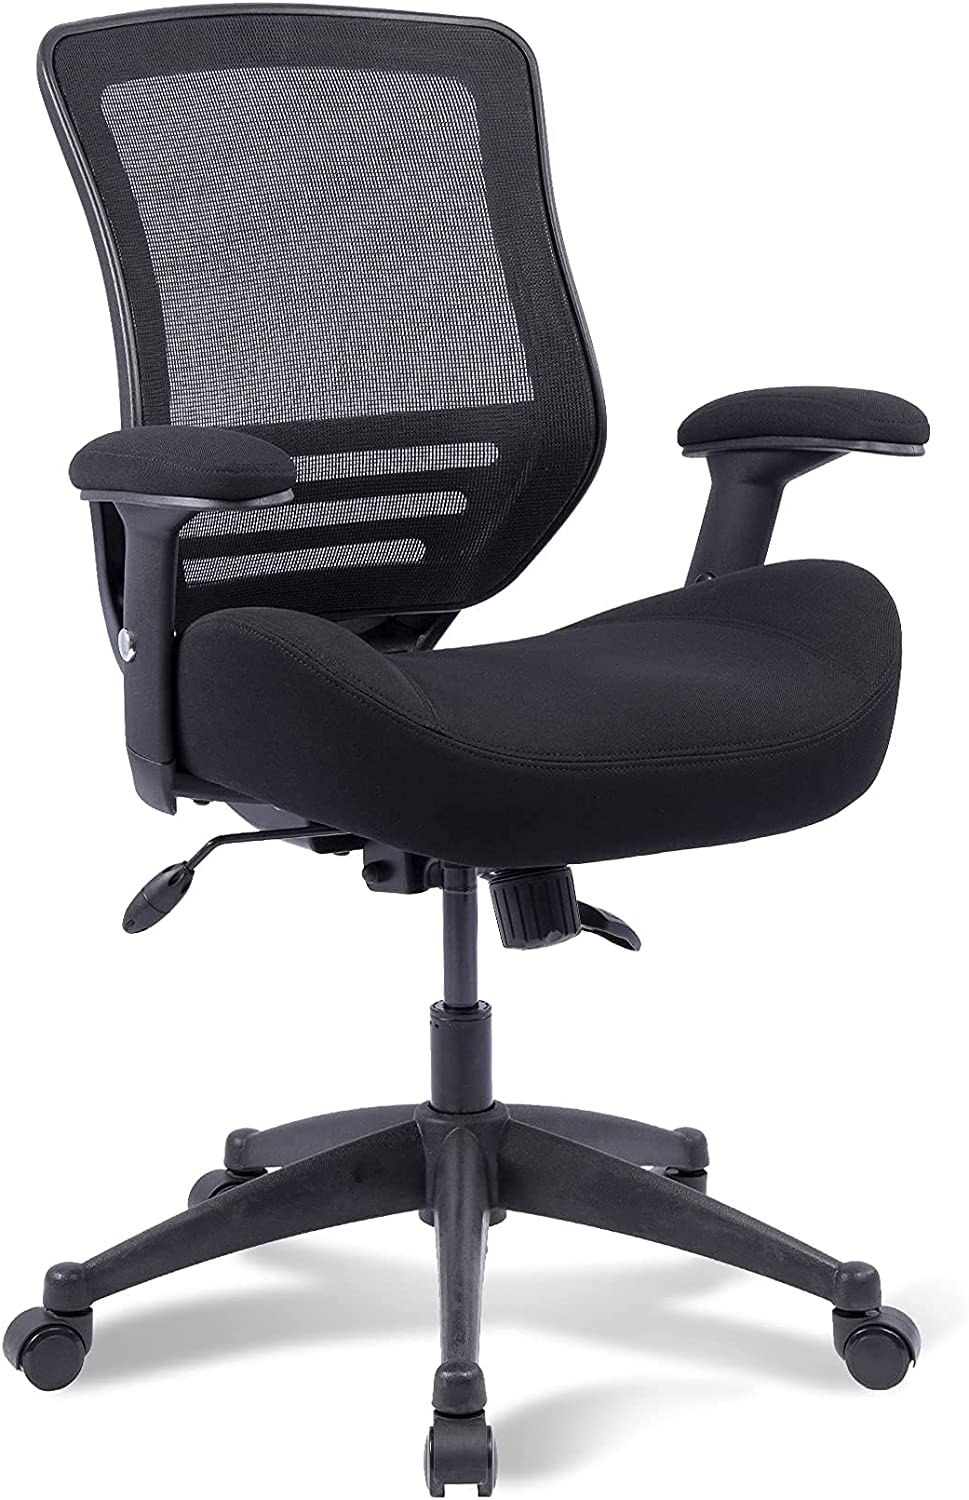 BOLISS Ergonomic Office Special Campaign Computer Desk Height Adjusting Chair Max 82% OFF Arm